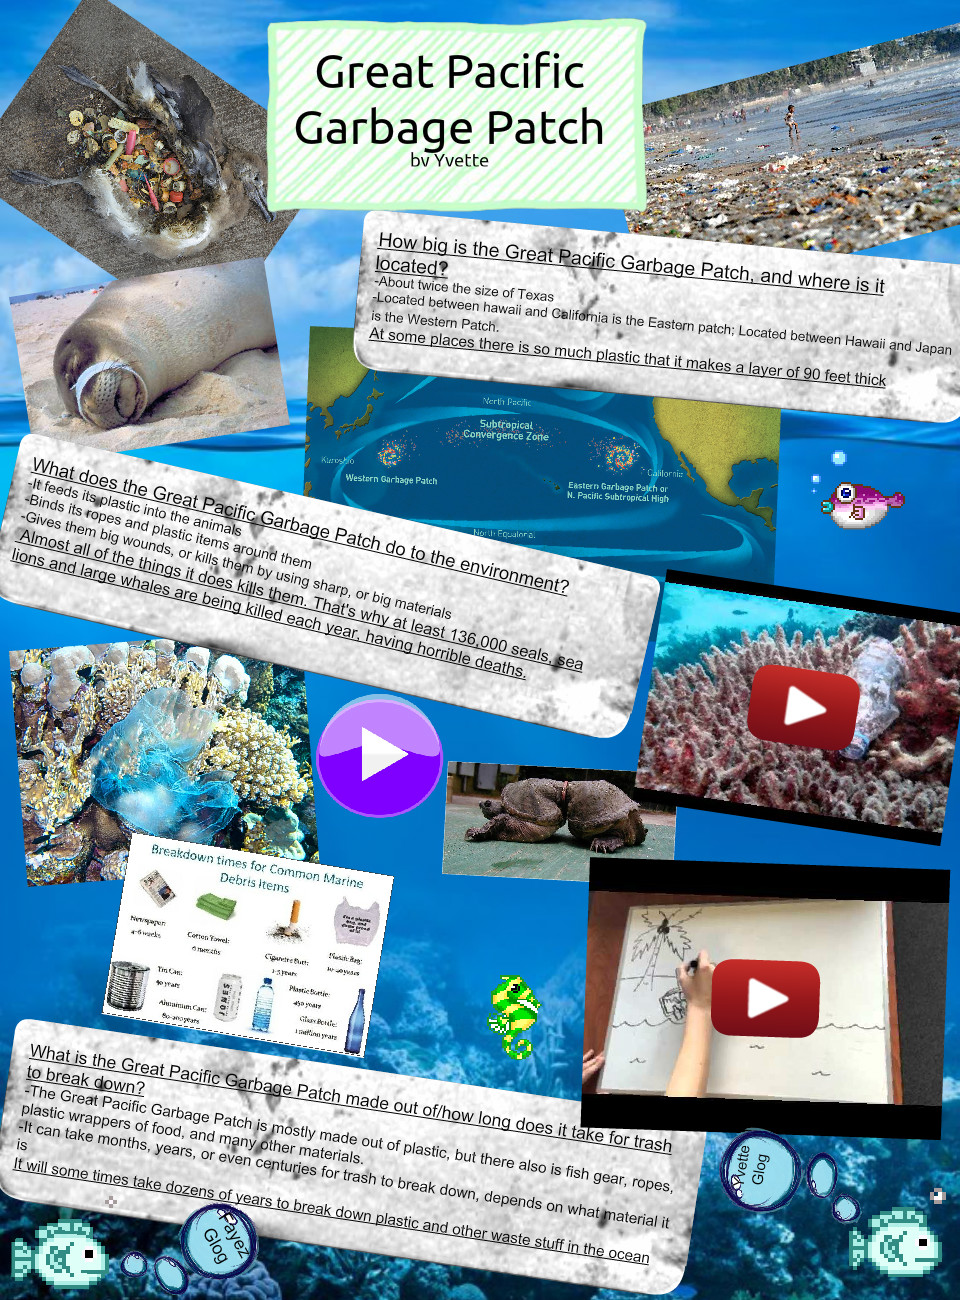 [2015] yvette Garretson (5th Earth Science 2015): Great Pacific Garbage Patch